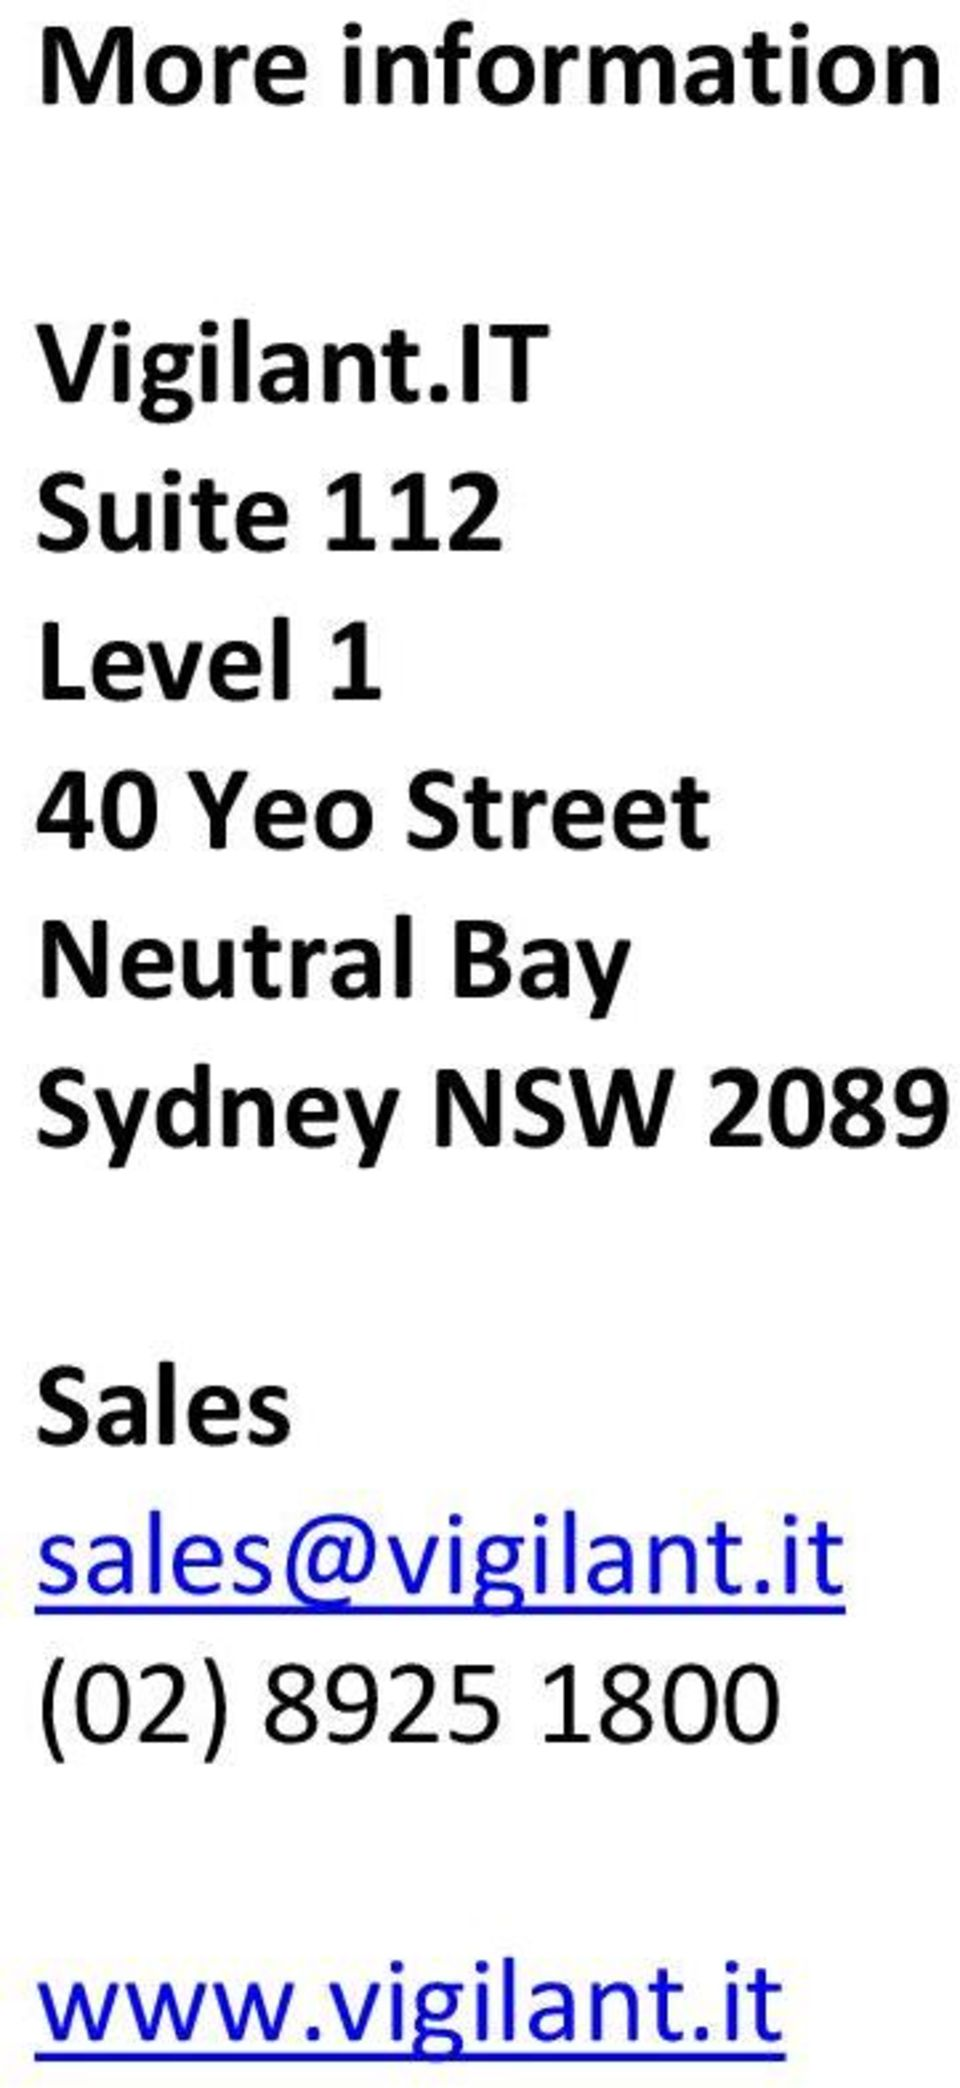 Neutral Bay Sydney NSW 2089 Sales